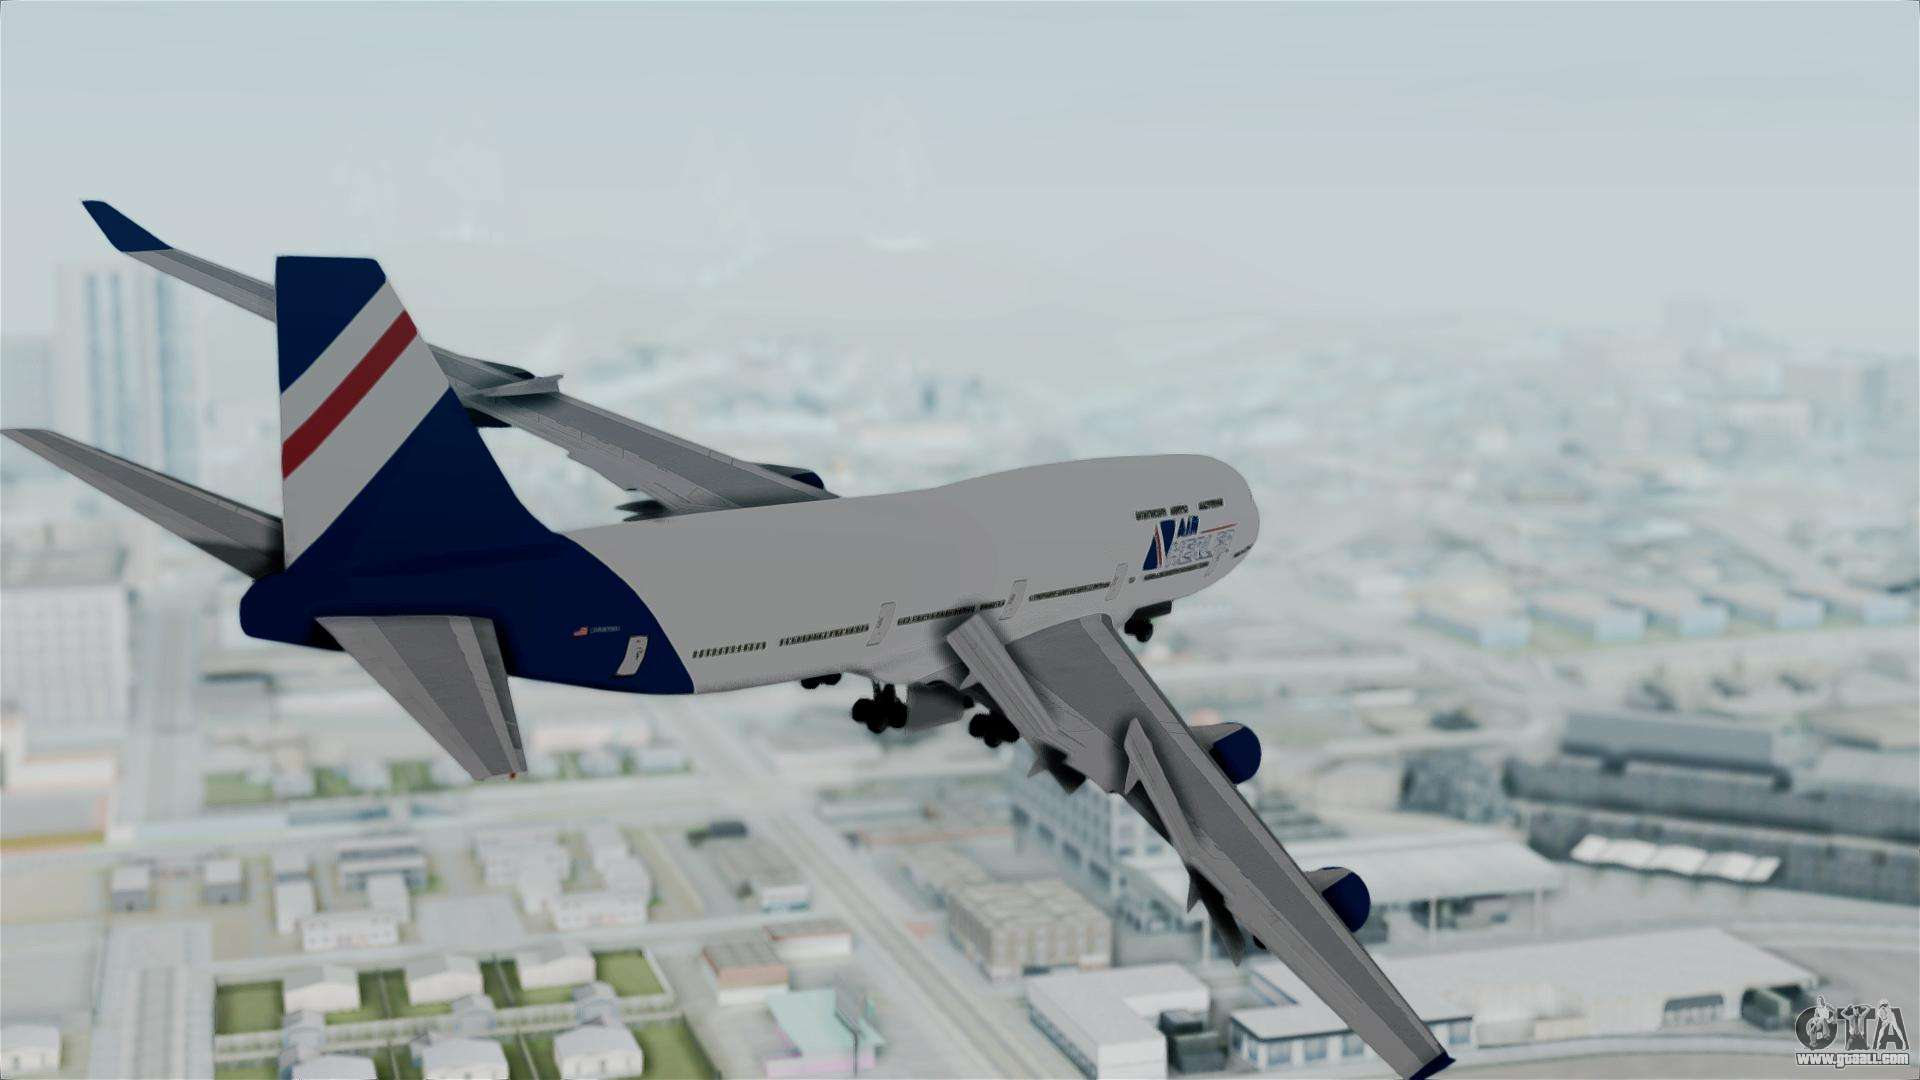 Jet Privato Gta 5 : Gta jumbo jet v air herler for san andreas